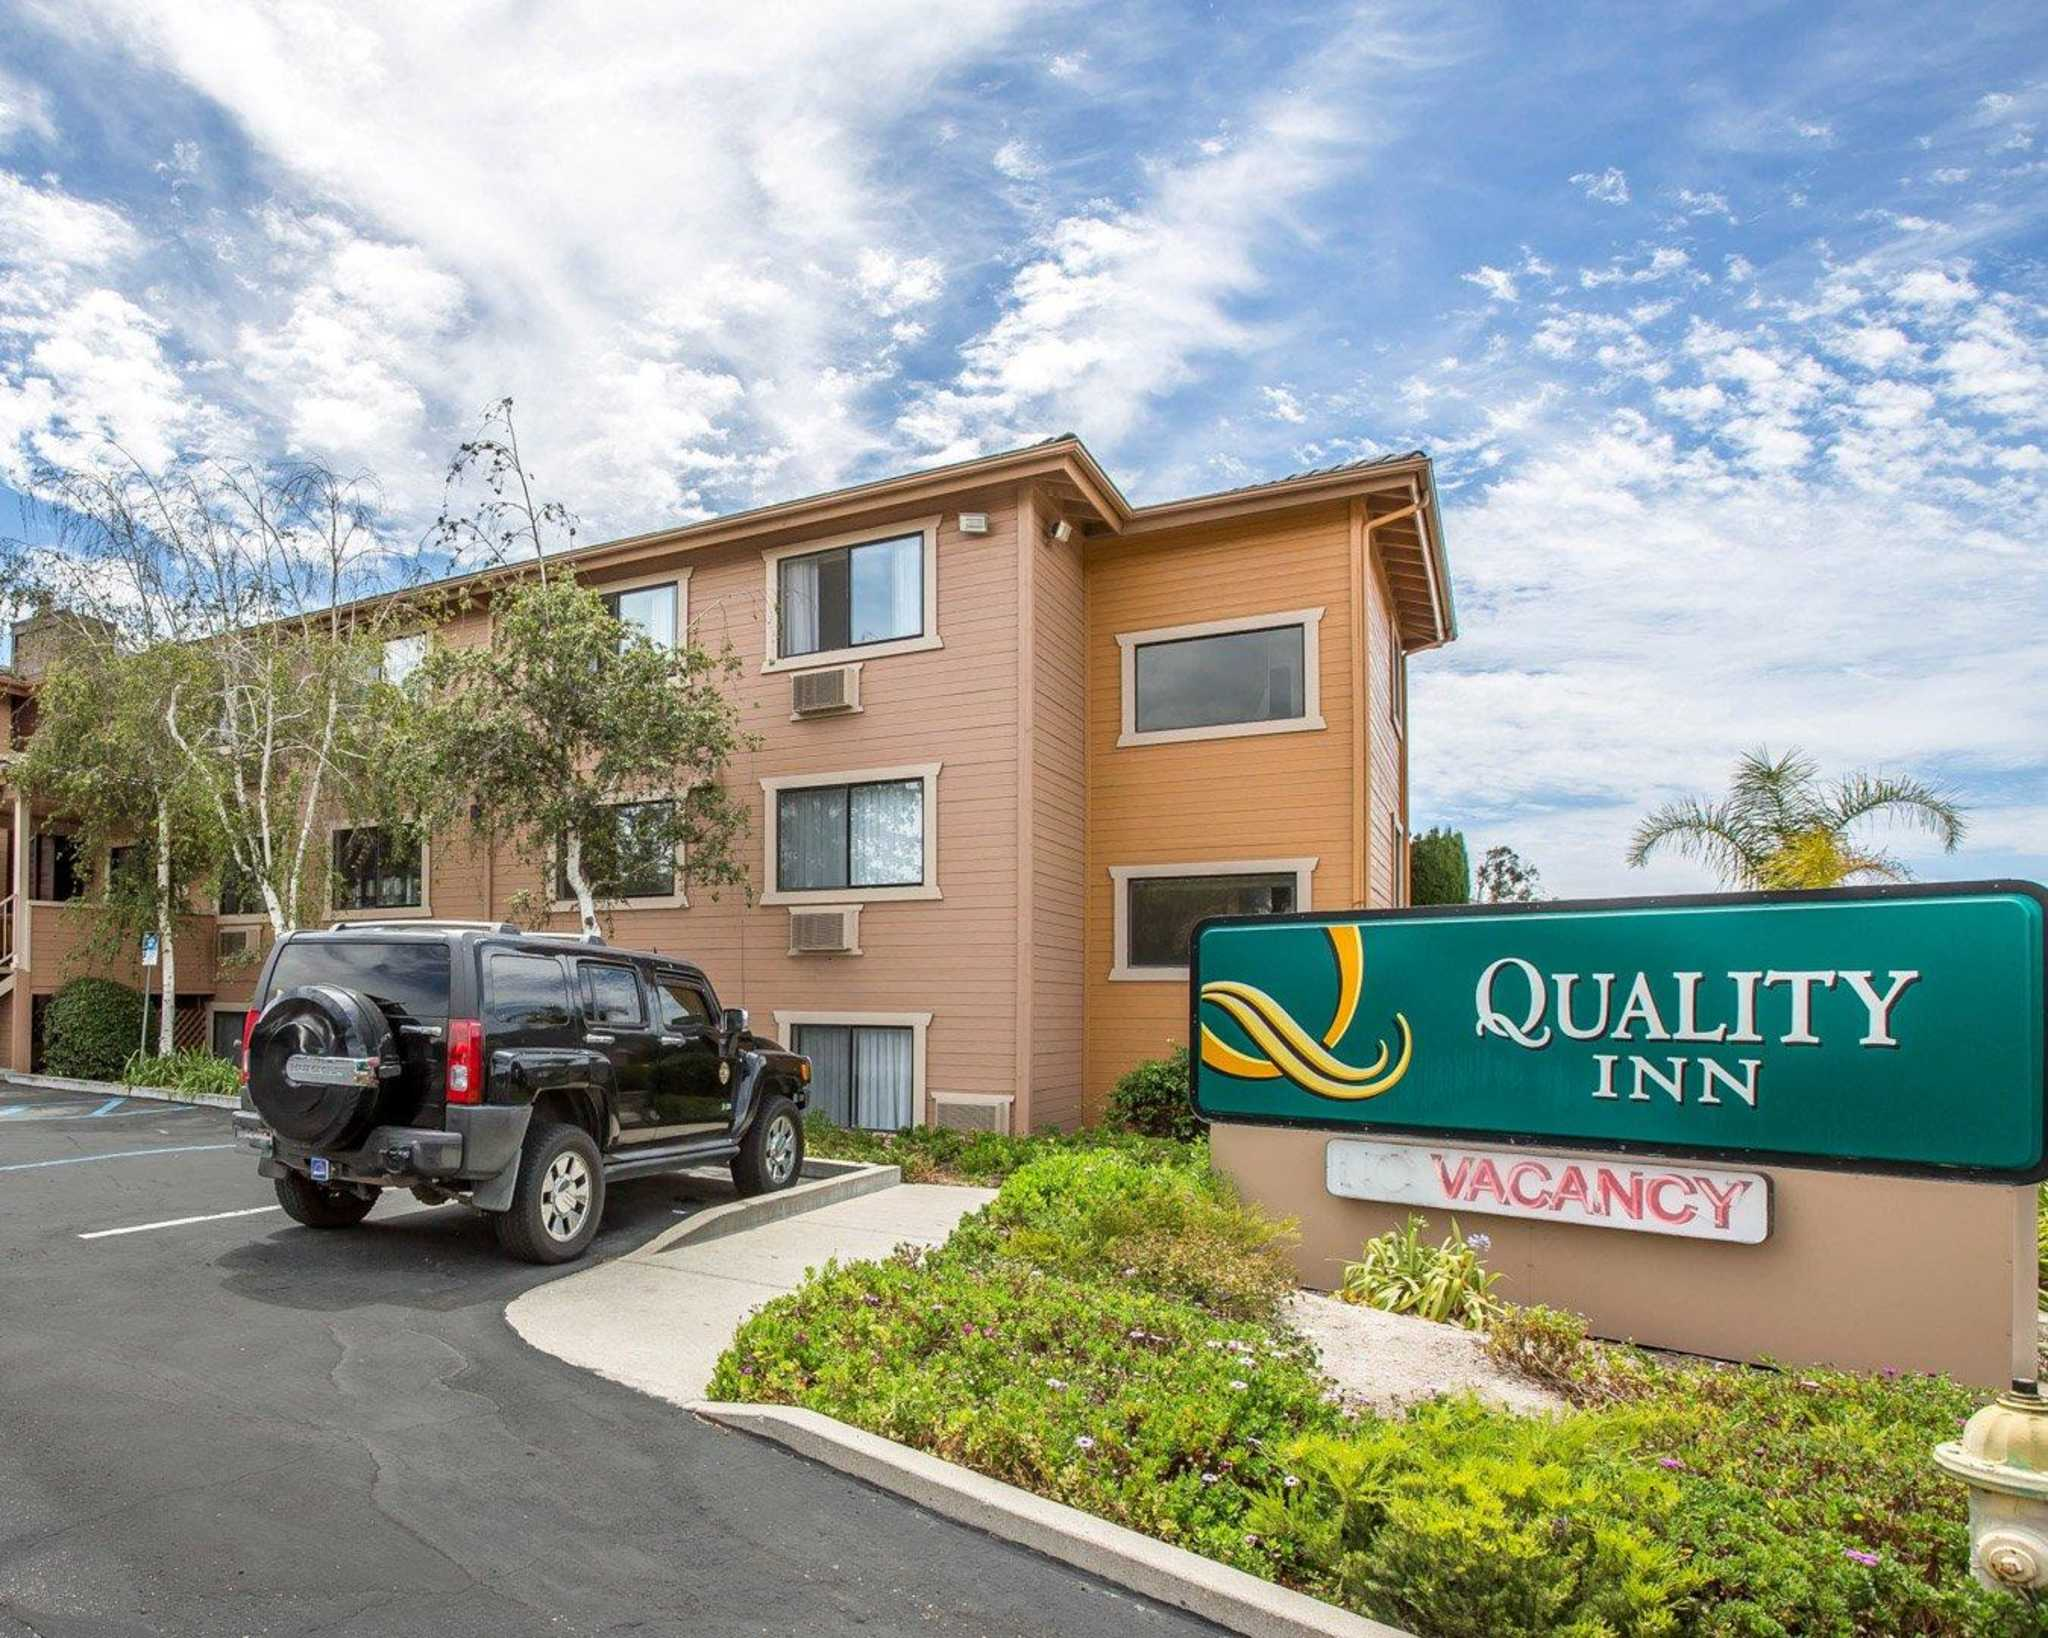 Quality inn santa ynez valley buellton california for Quality hotel